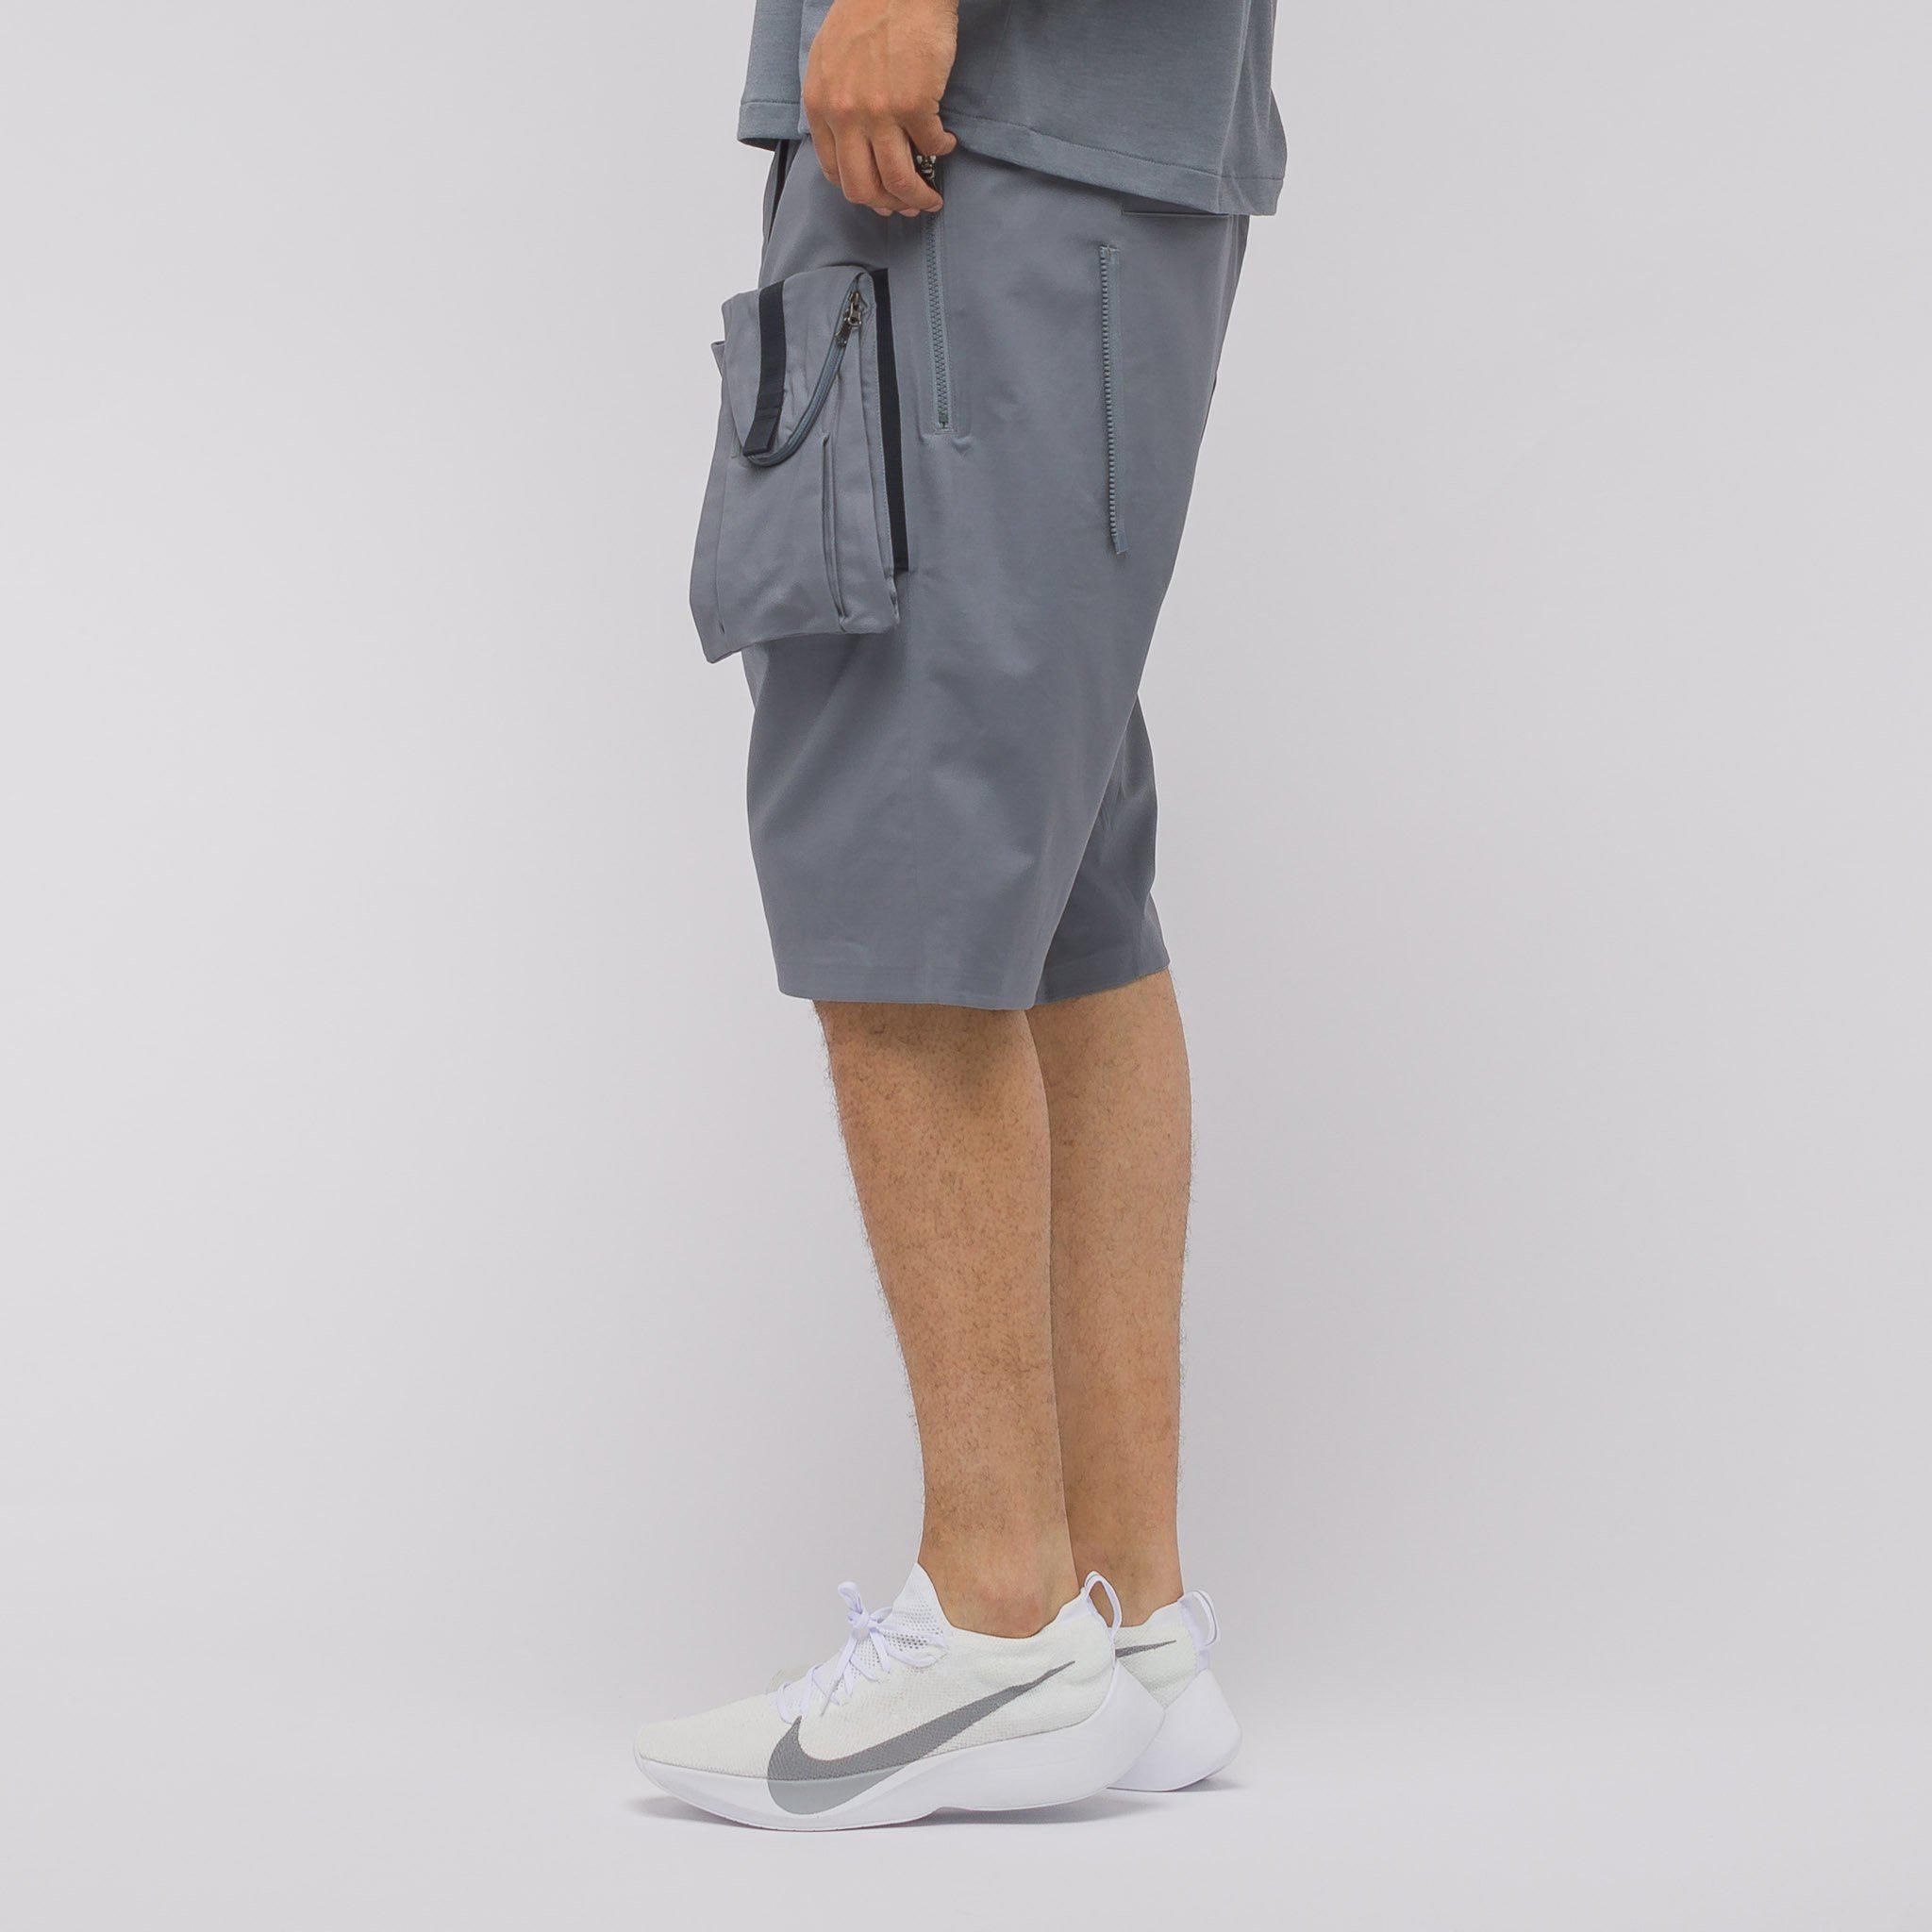 bd838956e8d79 Nike Acg Deploy Cargo Shorts In Cool Grey in Gray for Men - Lyst